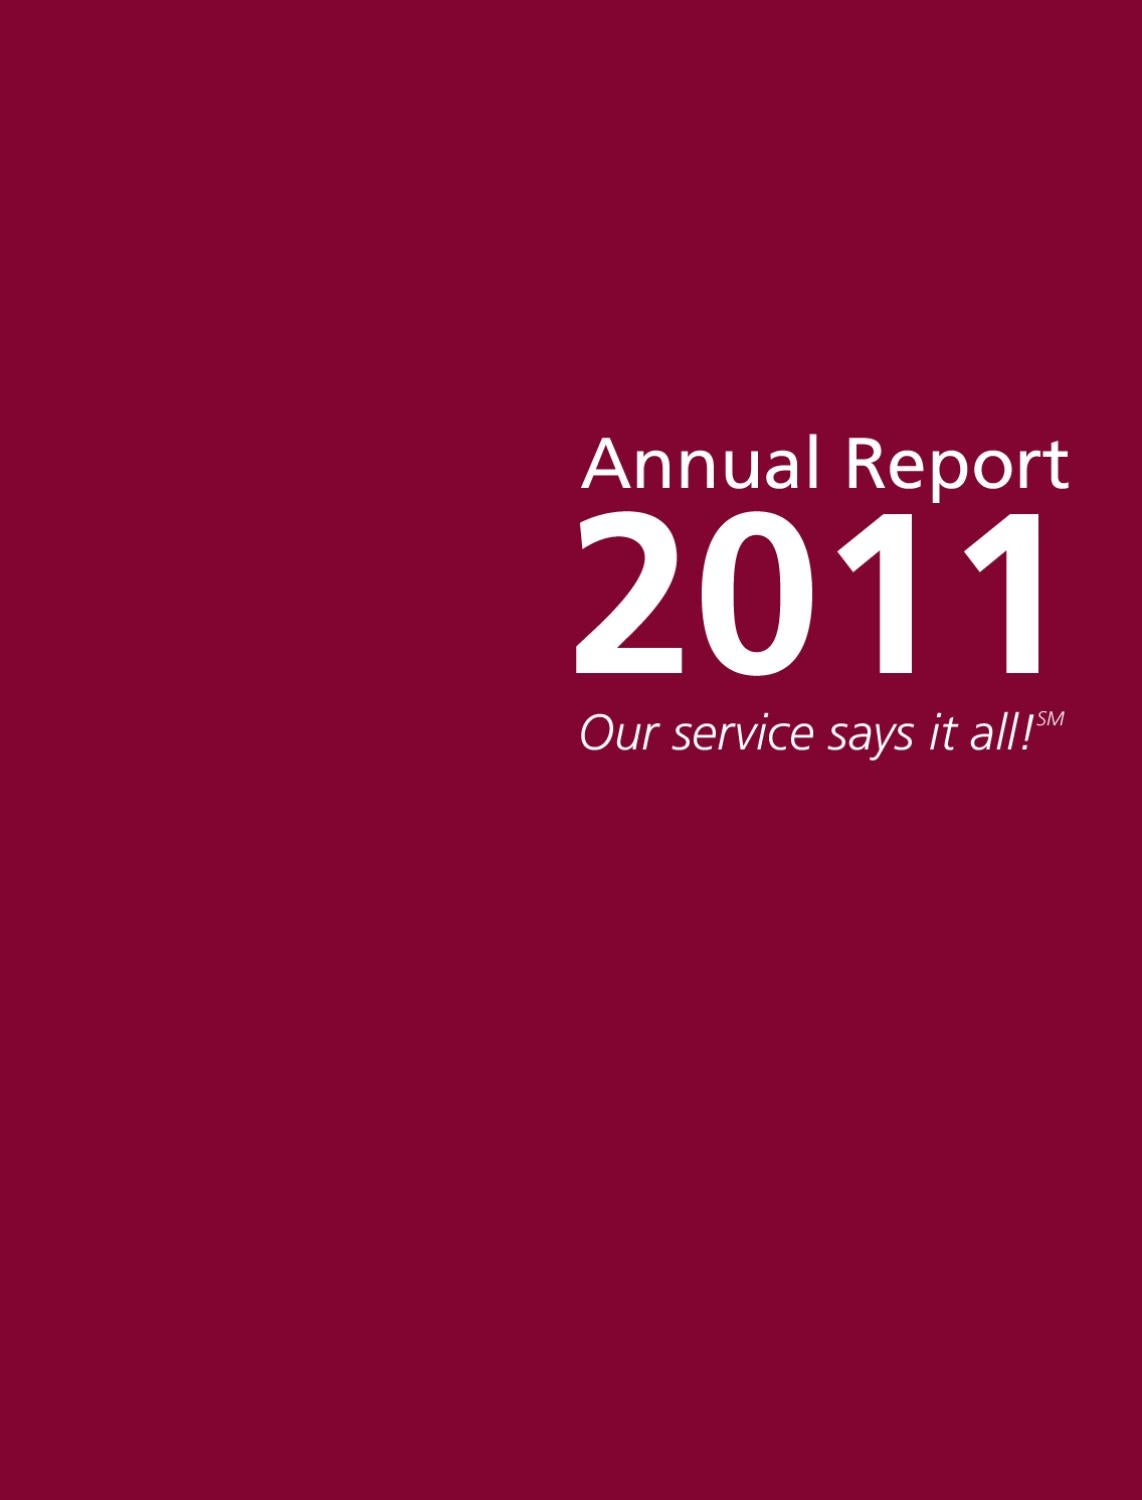 2011 CAP COM Federal Credit Union Annual Report by CAP COM